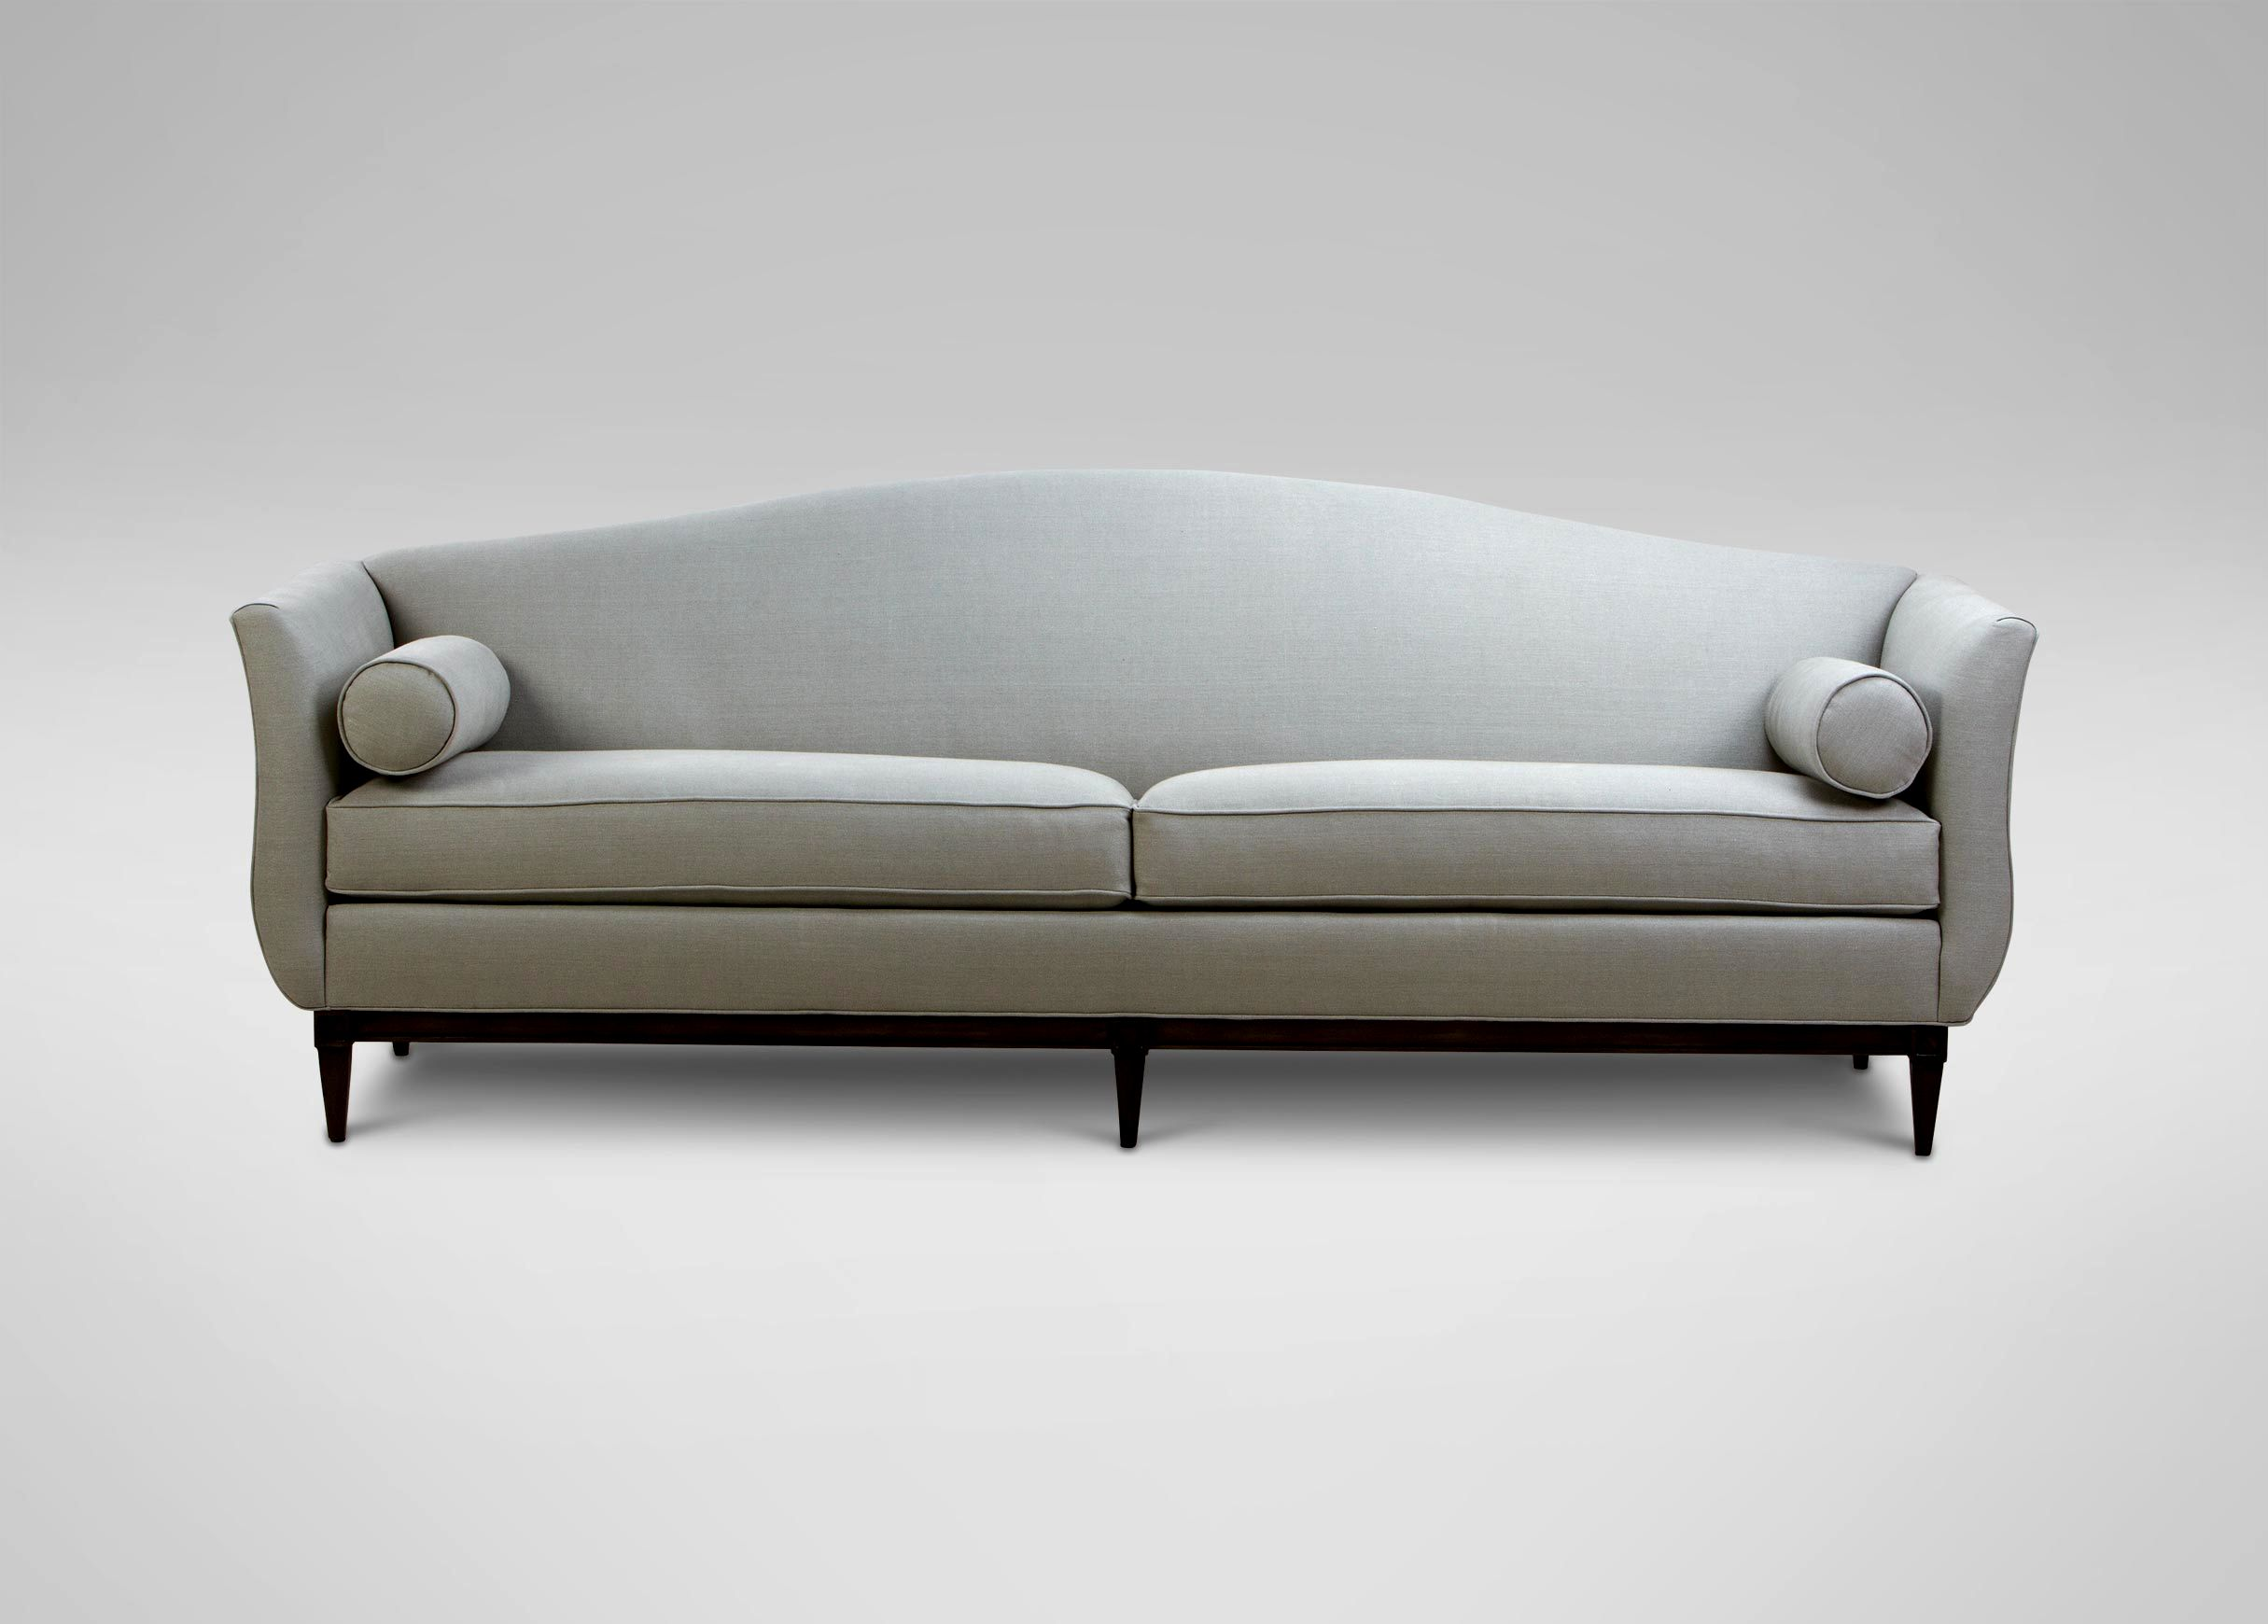 luxury intex pull out sofa wallpaper-Modern Intex Pull Out sofa Decoration